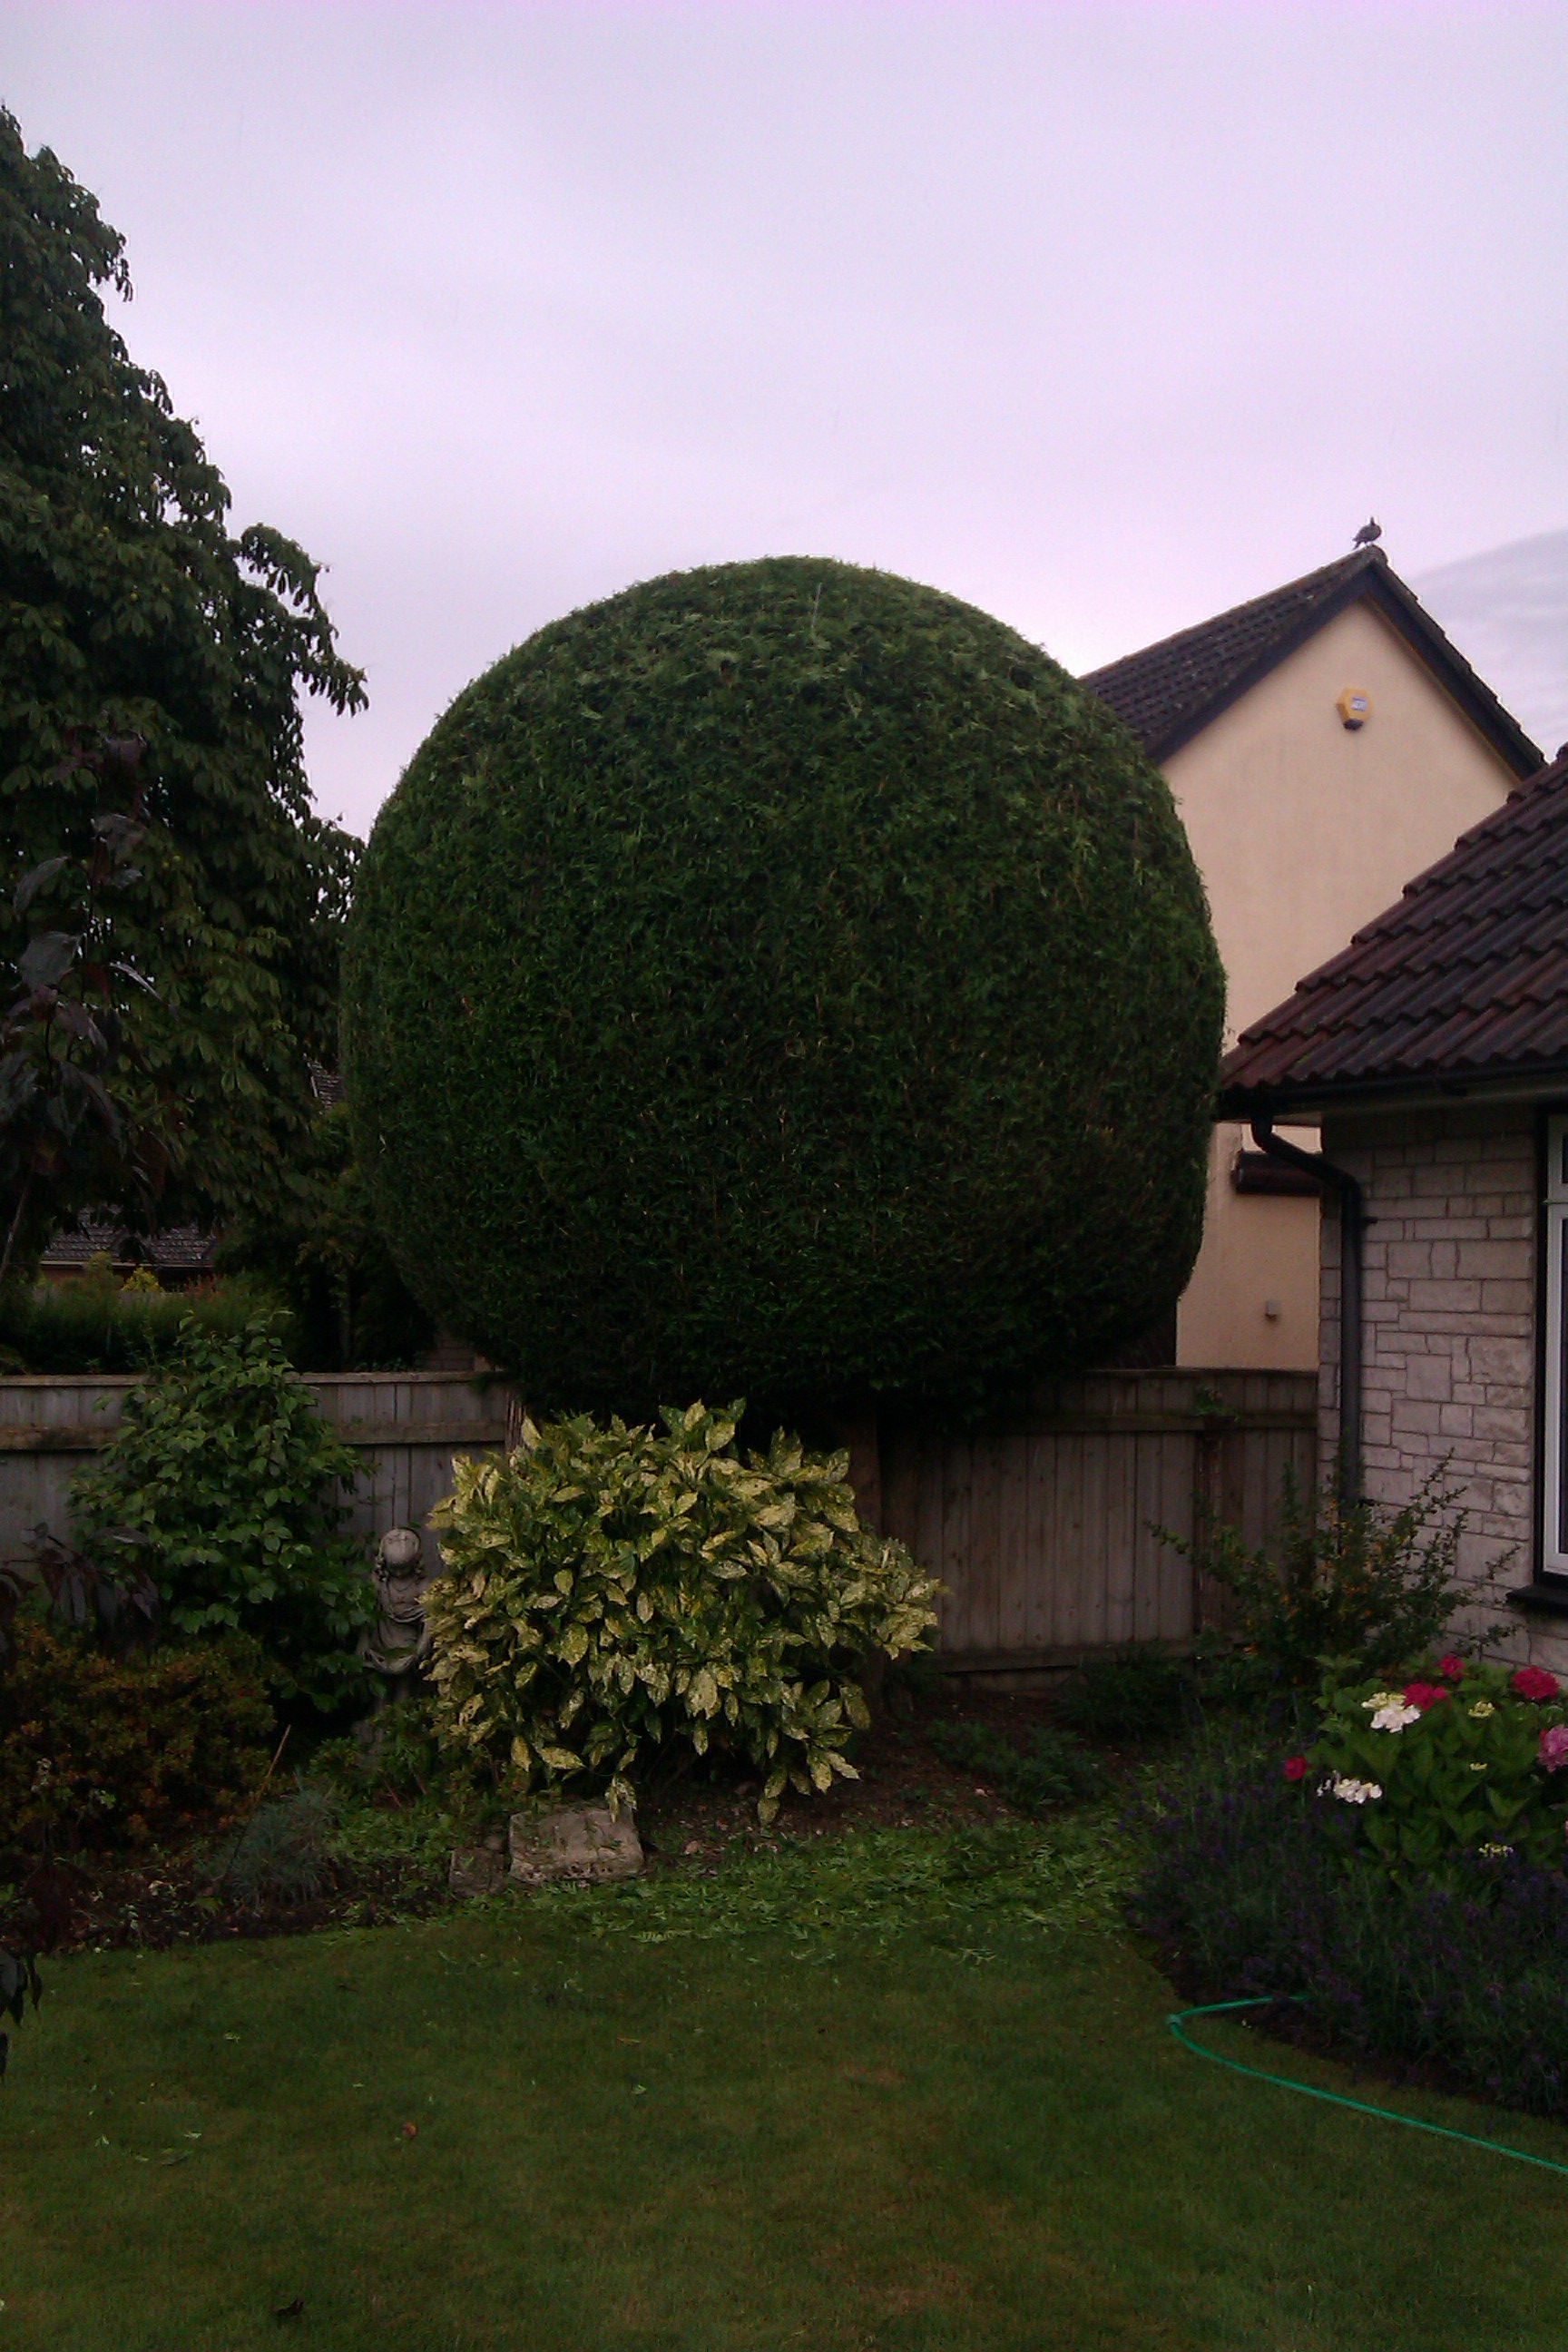 Topiary in Dorset